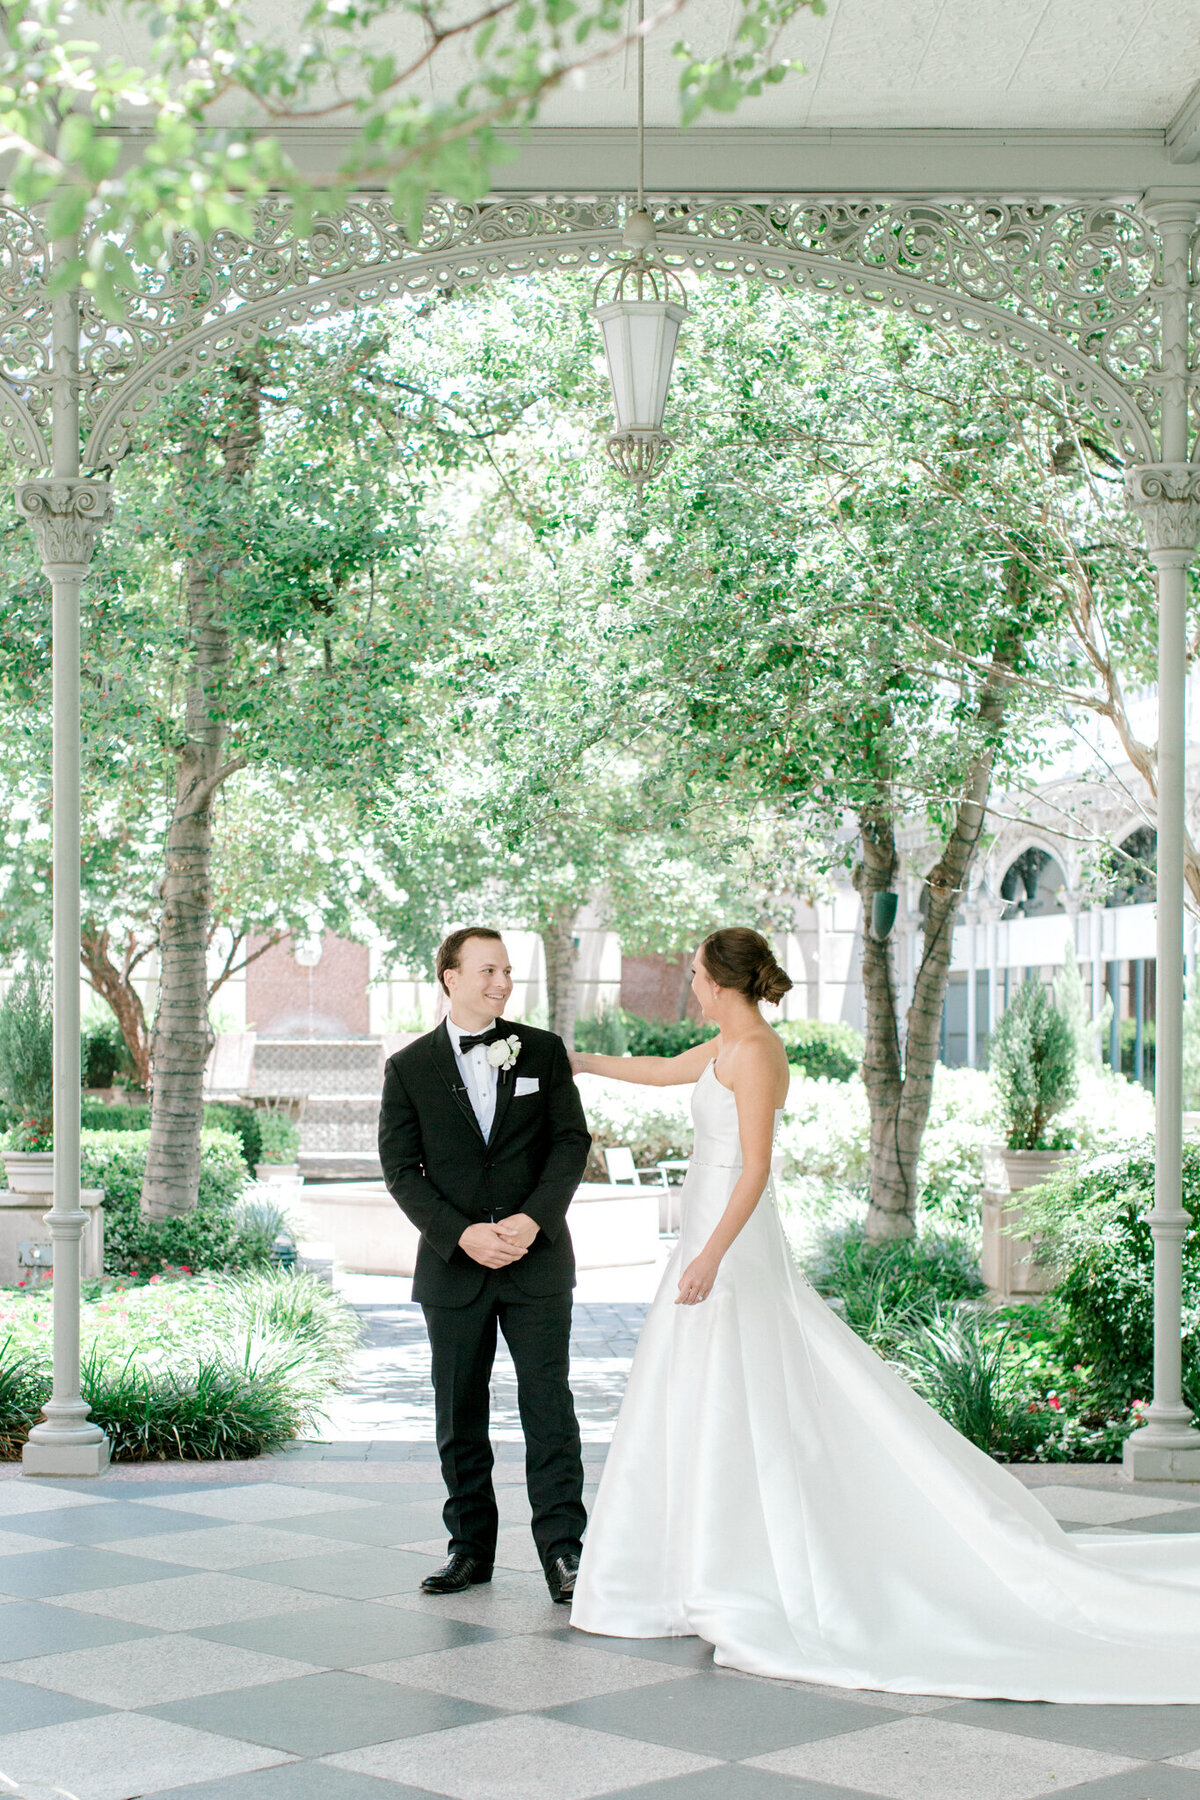 Wedding at the Crescent Court Hotel and Highland Park United Methodist Church in Dallas | Sami Kathryn Photography | DFW Wedding Photographer-49